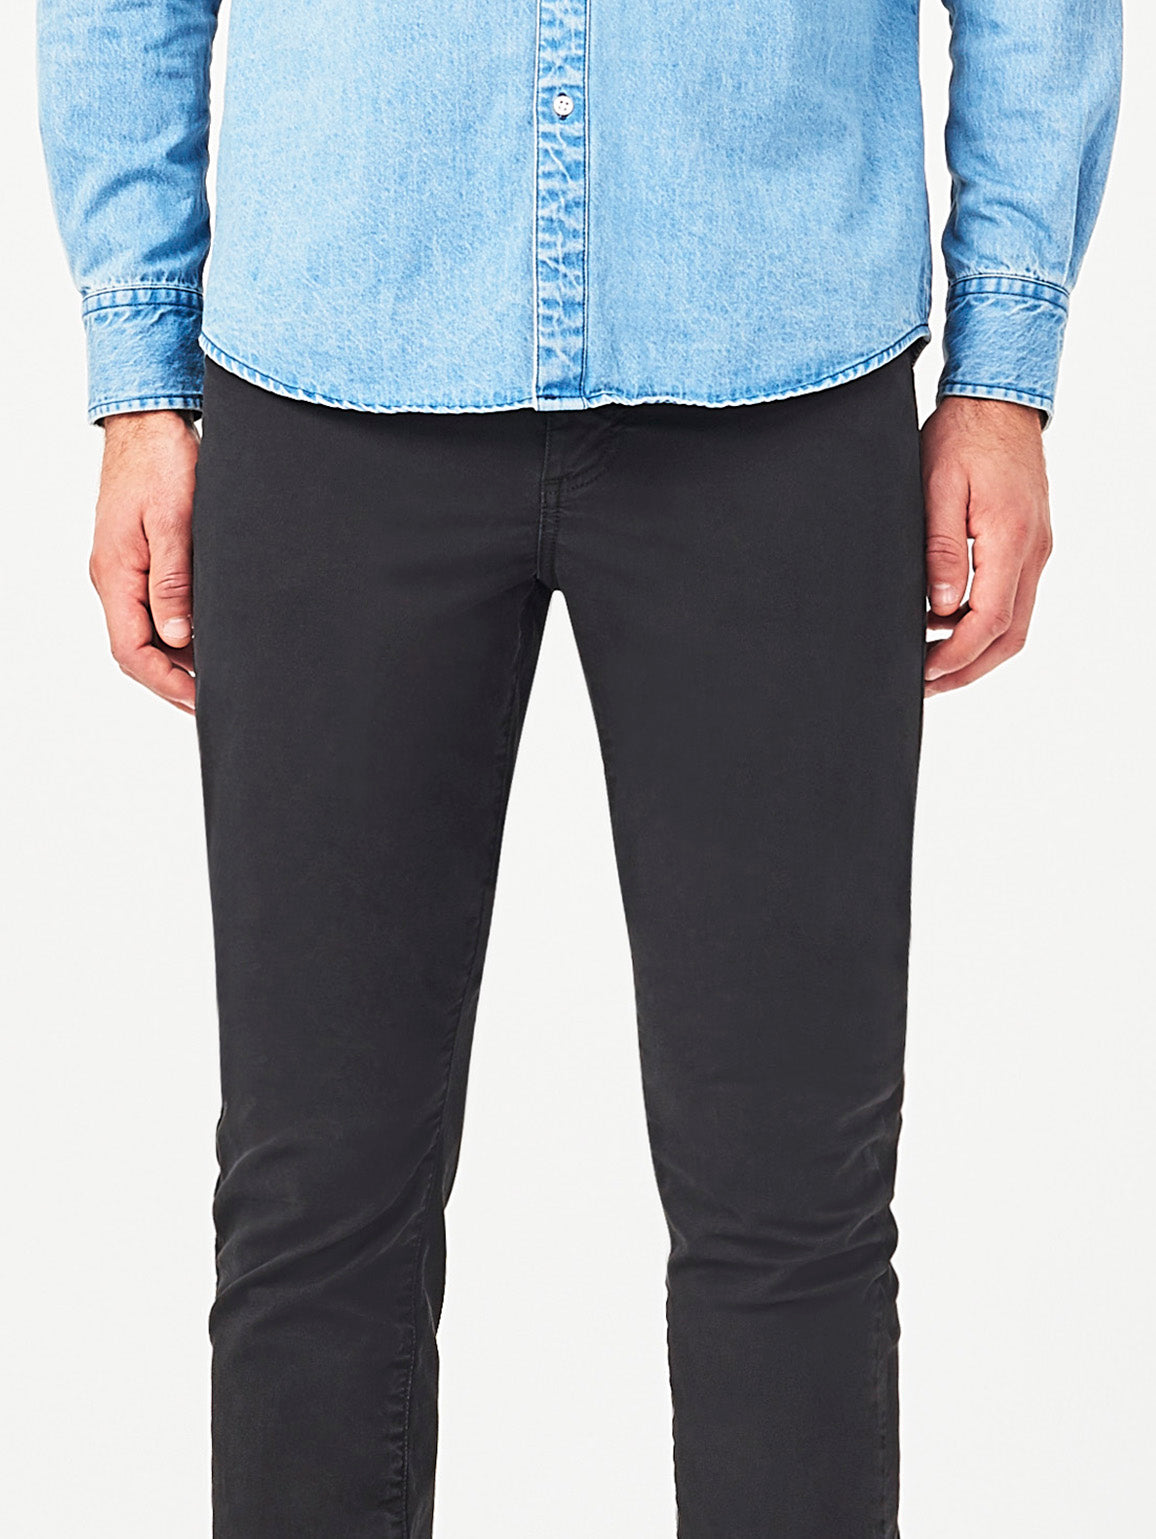 Russell Slim Straight | Patron DL 1961 Denim